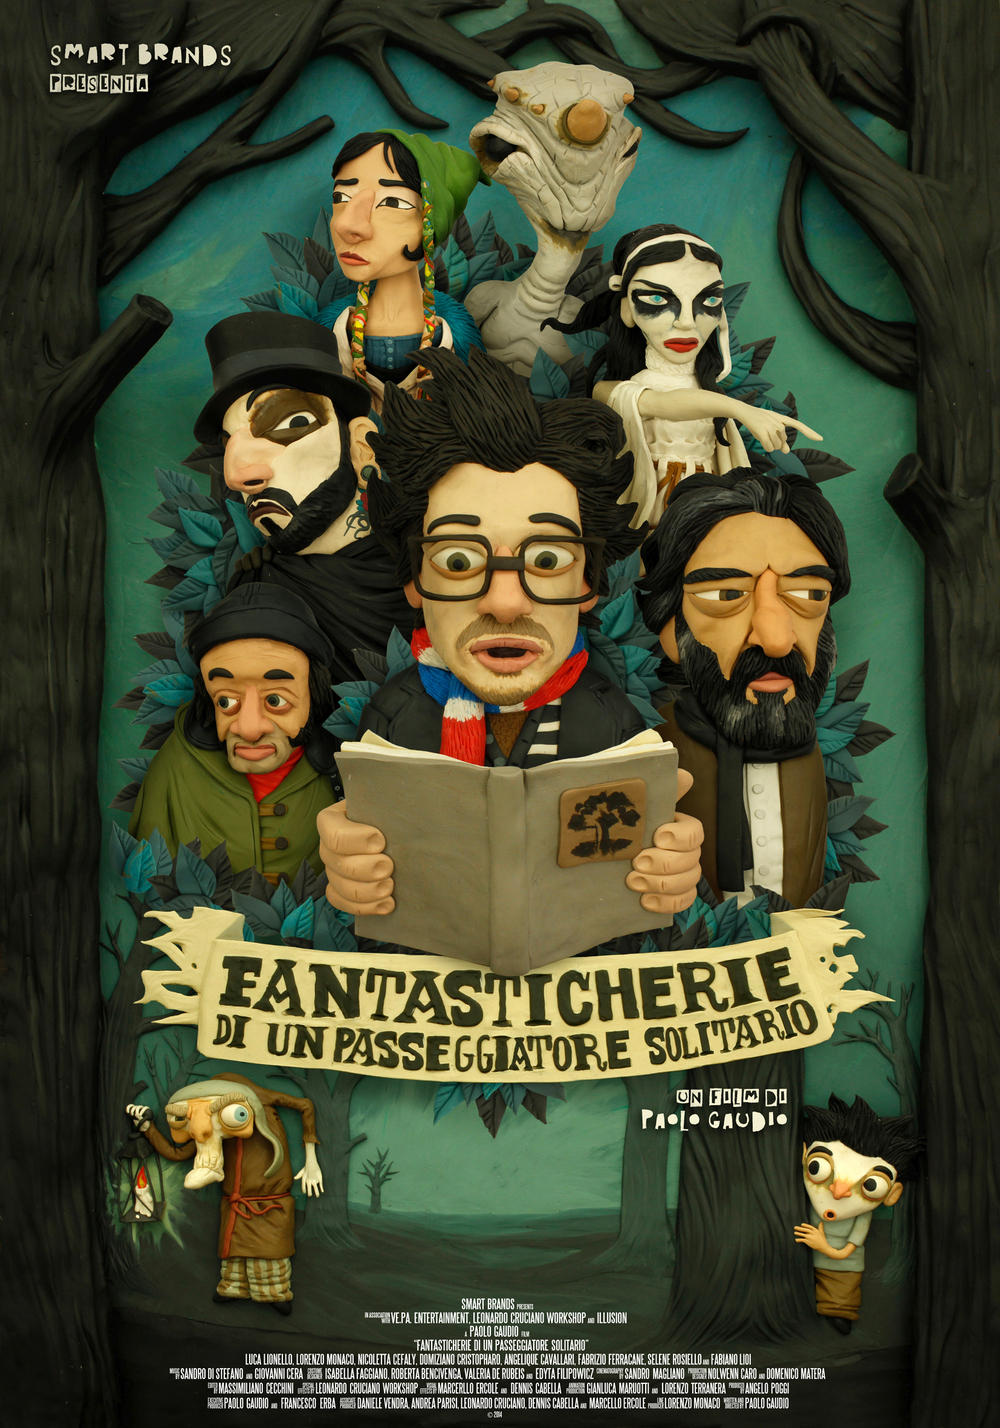 Fantasticherie di un Passeggiatore Solitario  - 83 mins - Fantasy/Animation, Italy  Directed by Paolo Gaudio  REGIONAL PREMIERE  Synopsis:  Three characters in three different ages are united by a dream of freedom and a small masterpiece of literature. A journey through the mysterious and timeless aspirations, sufferings and 'Reveries' of a poet, of a young student and a child lost in the woods.